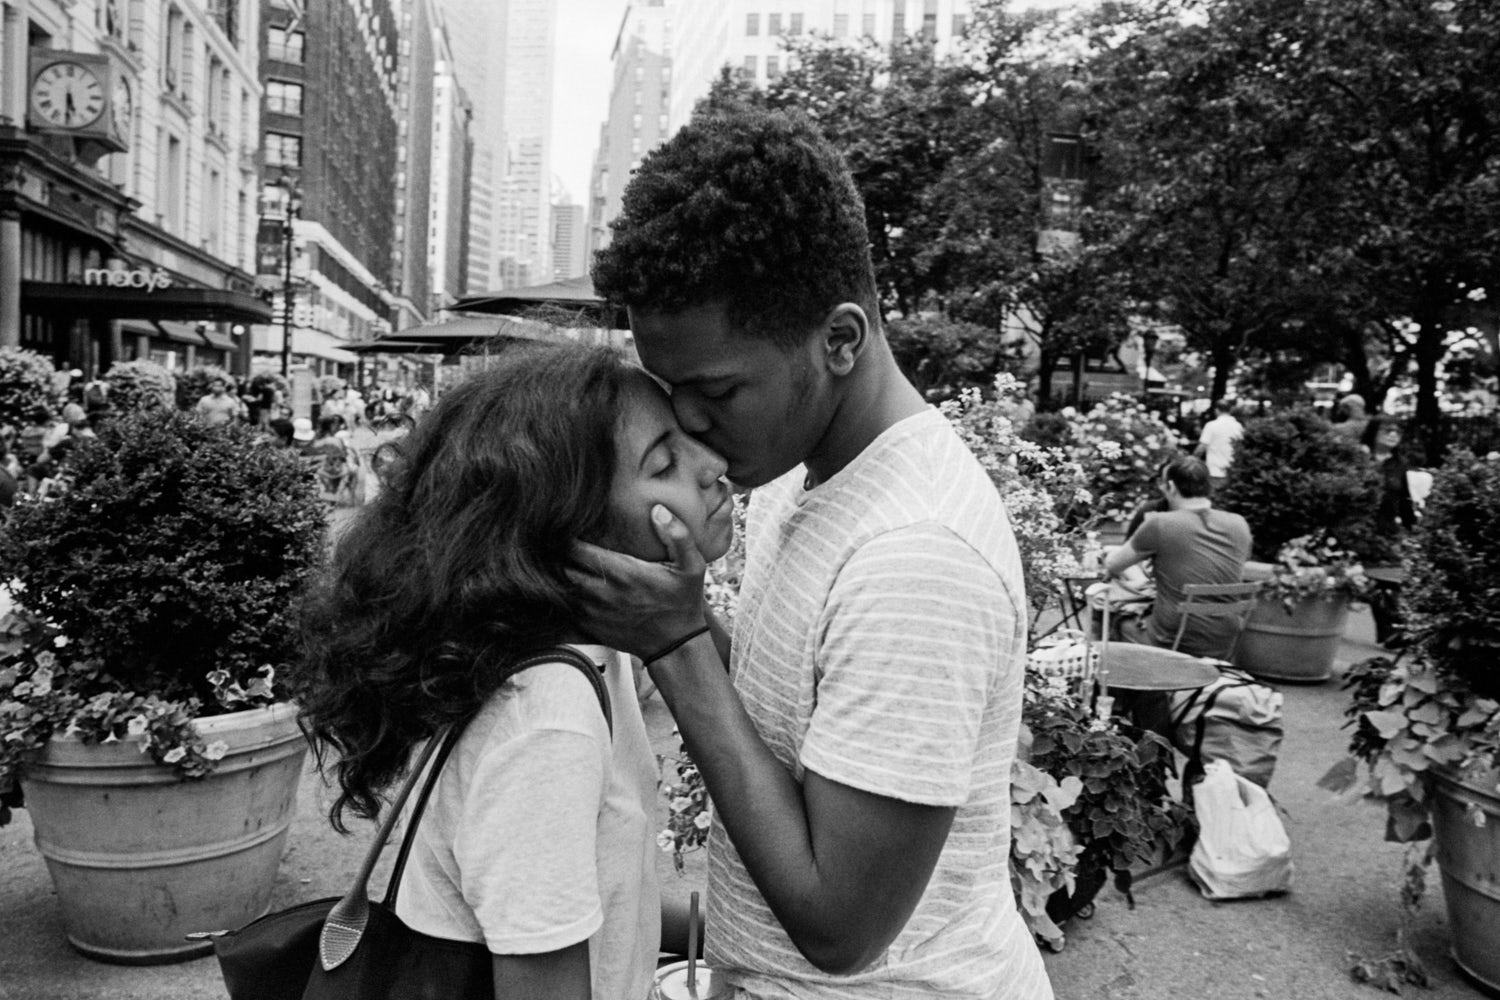 A photograph of a couple embracing by Andre D Wagner